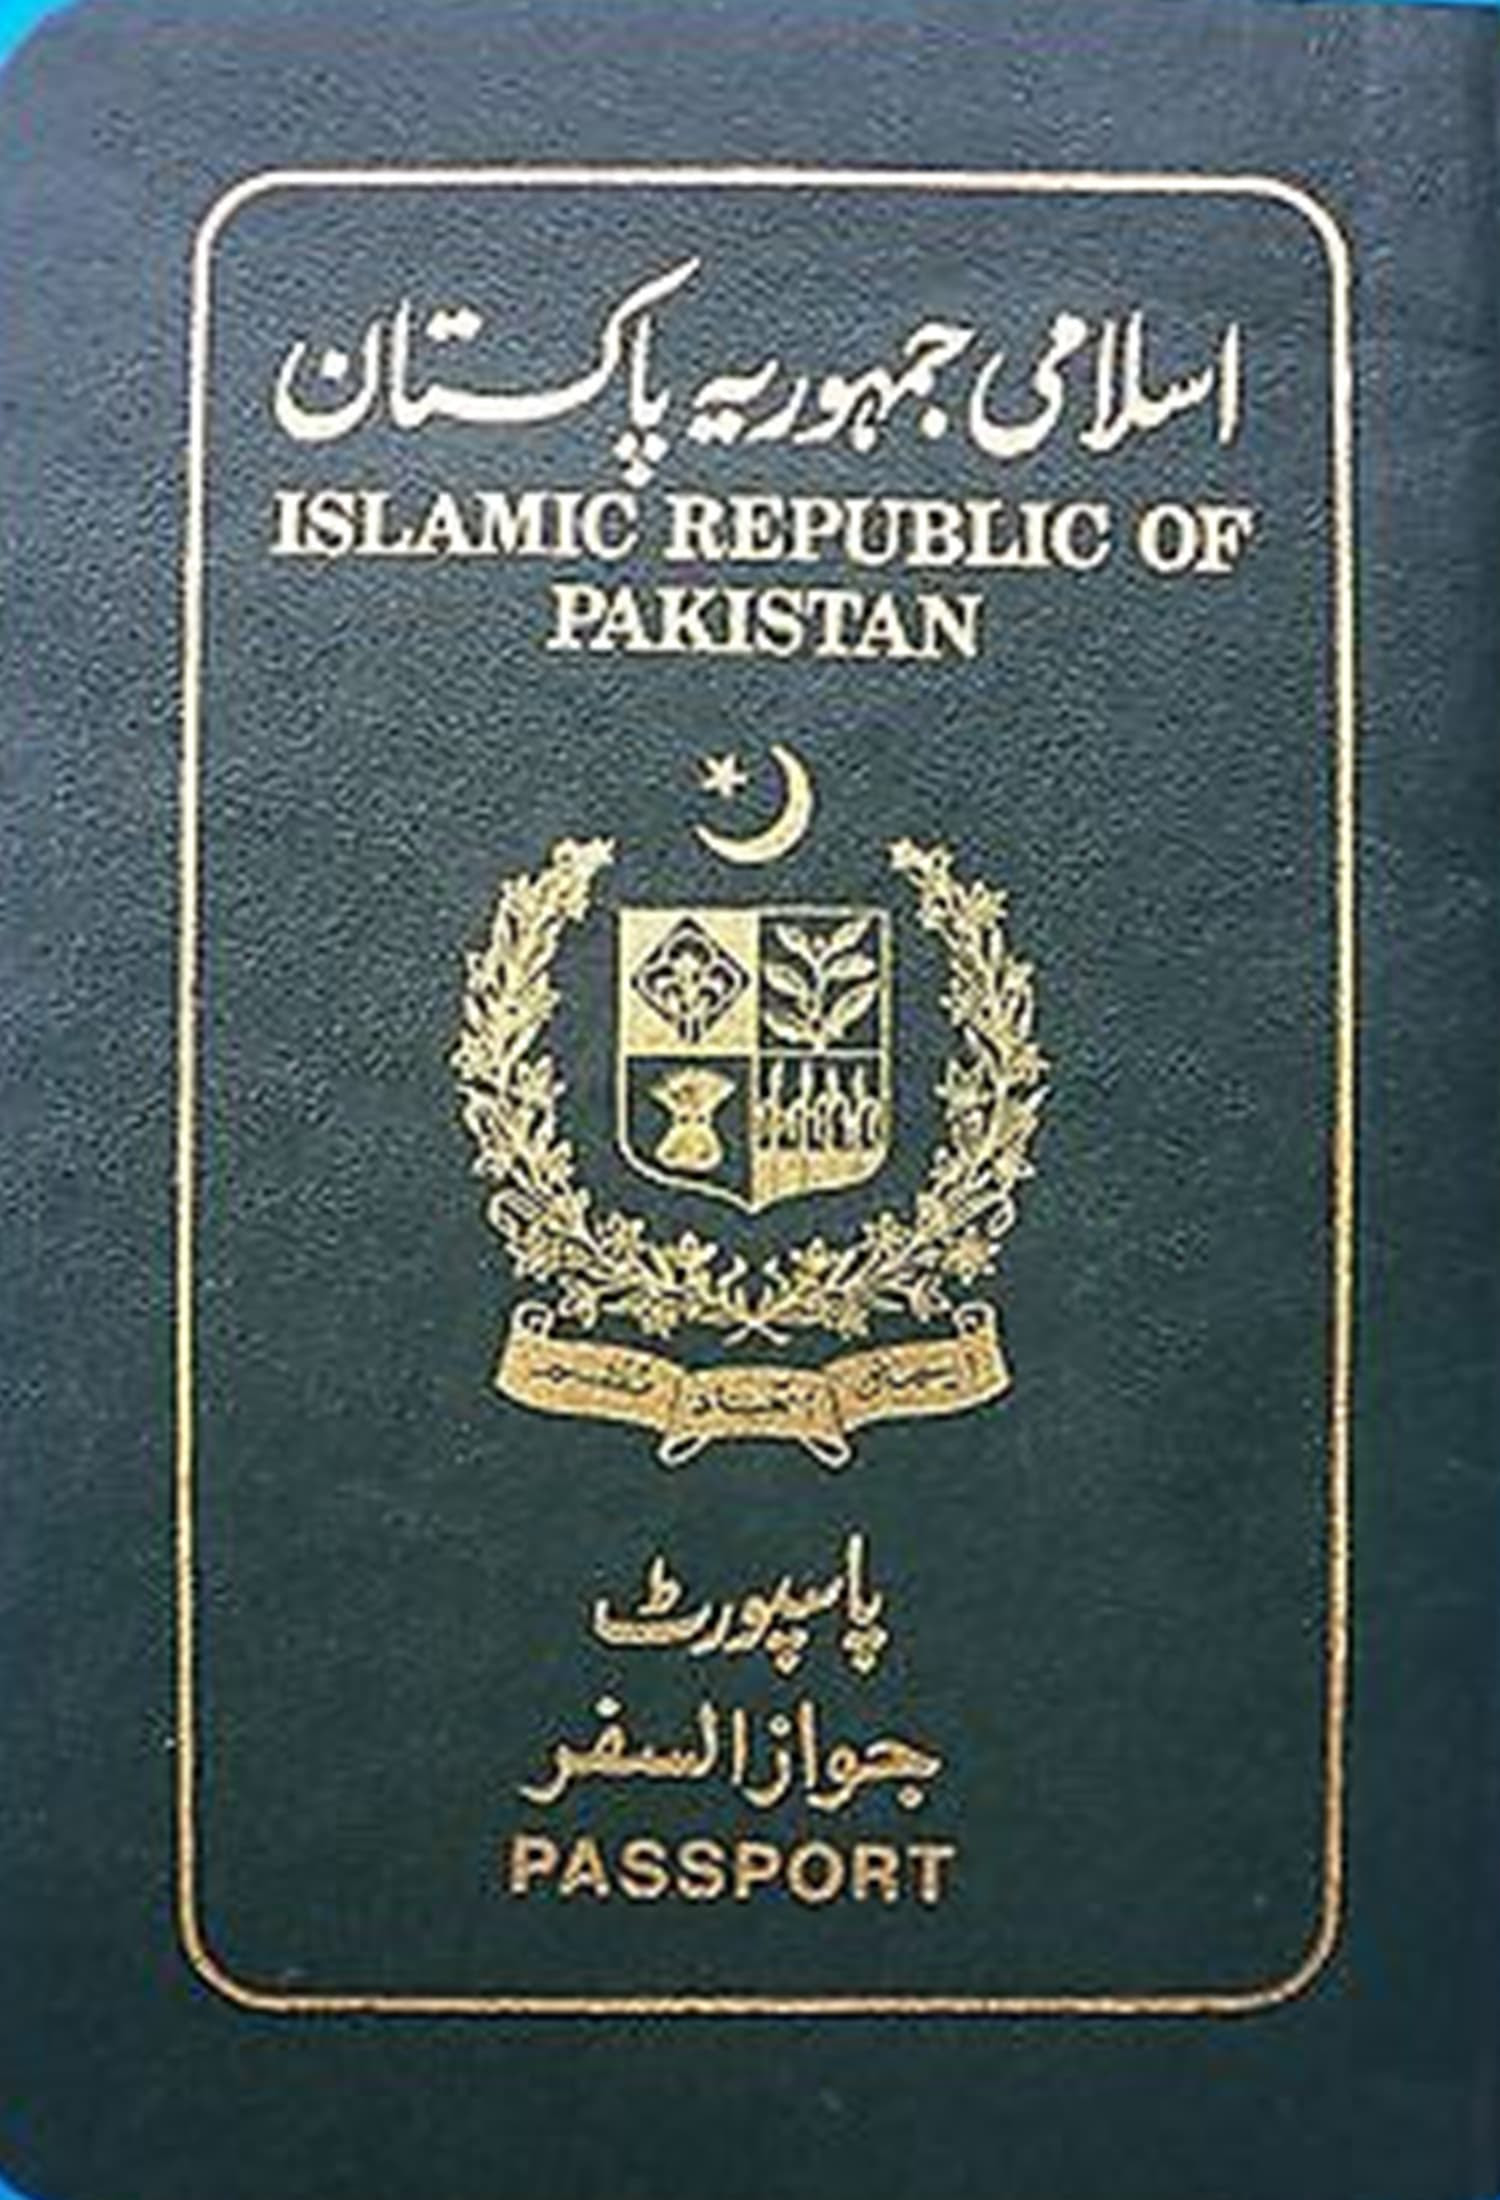 During Zia's time, the Pakistani passport had an Arabic text in it as well